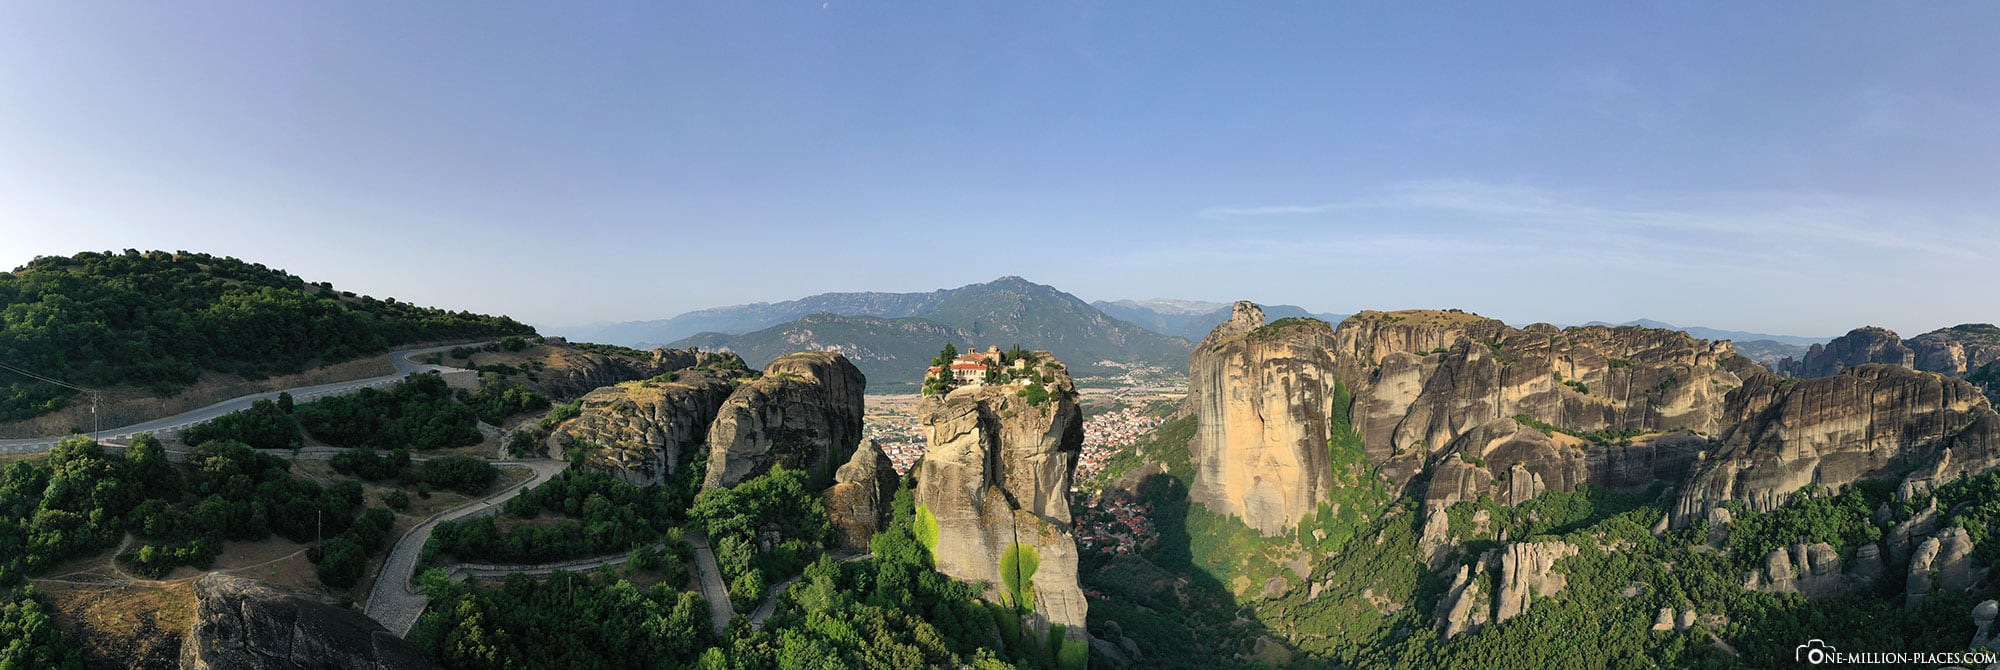 Panoramic view, Holy Trinity Monastery, Meteora, James Bond, Monastery on Rocks, Greece, Travelreport